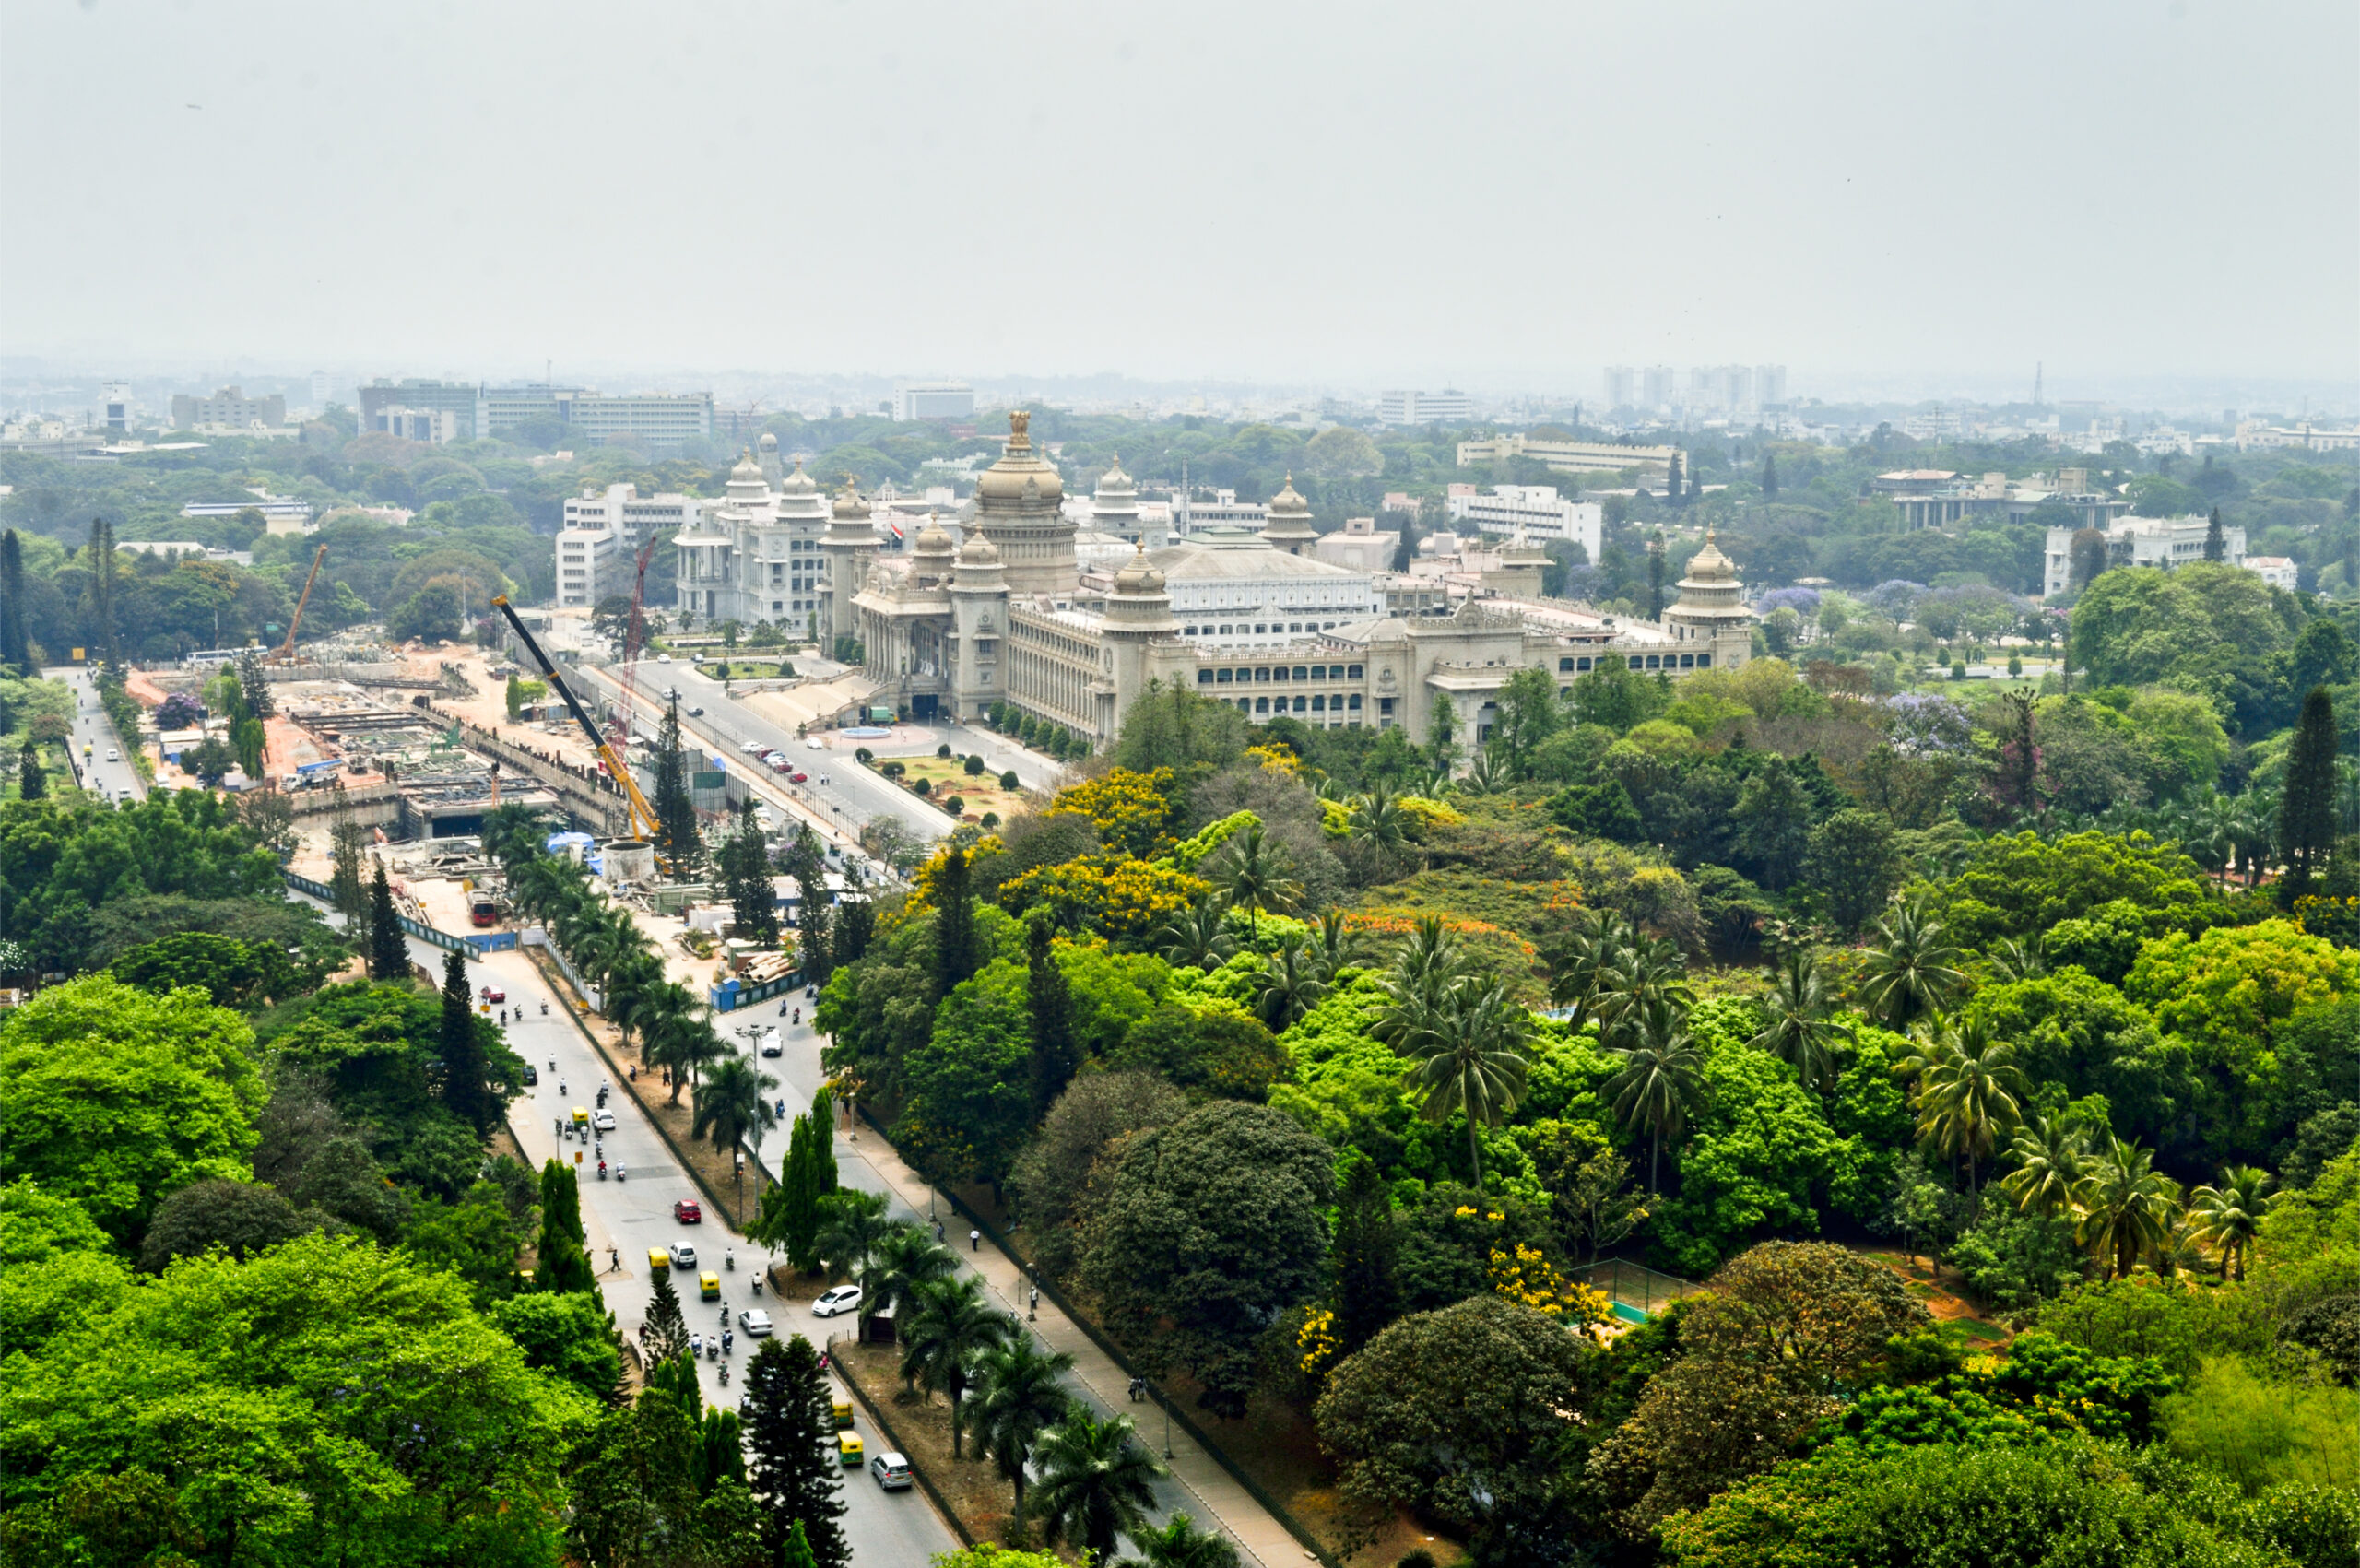 Bangalore city Aerial view with vidhansoudha coverd with trees